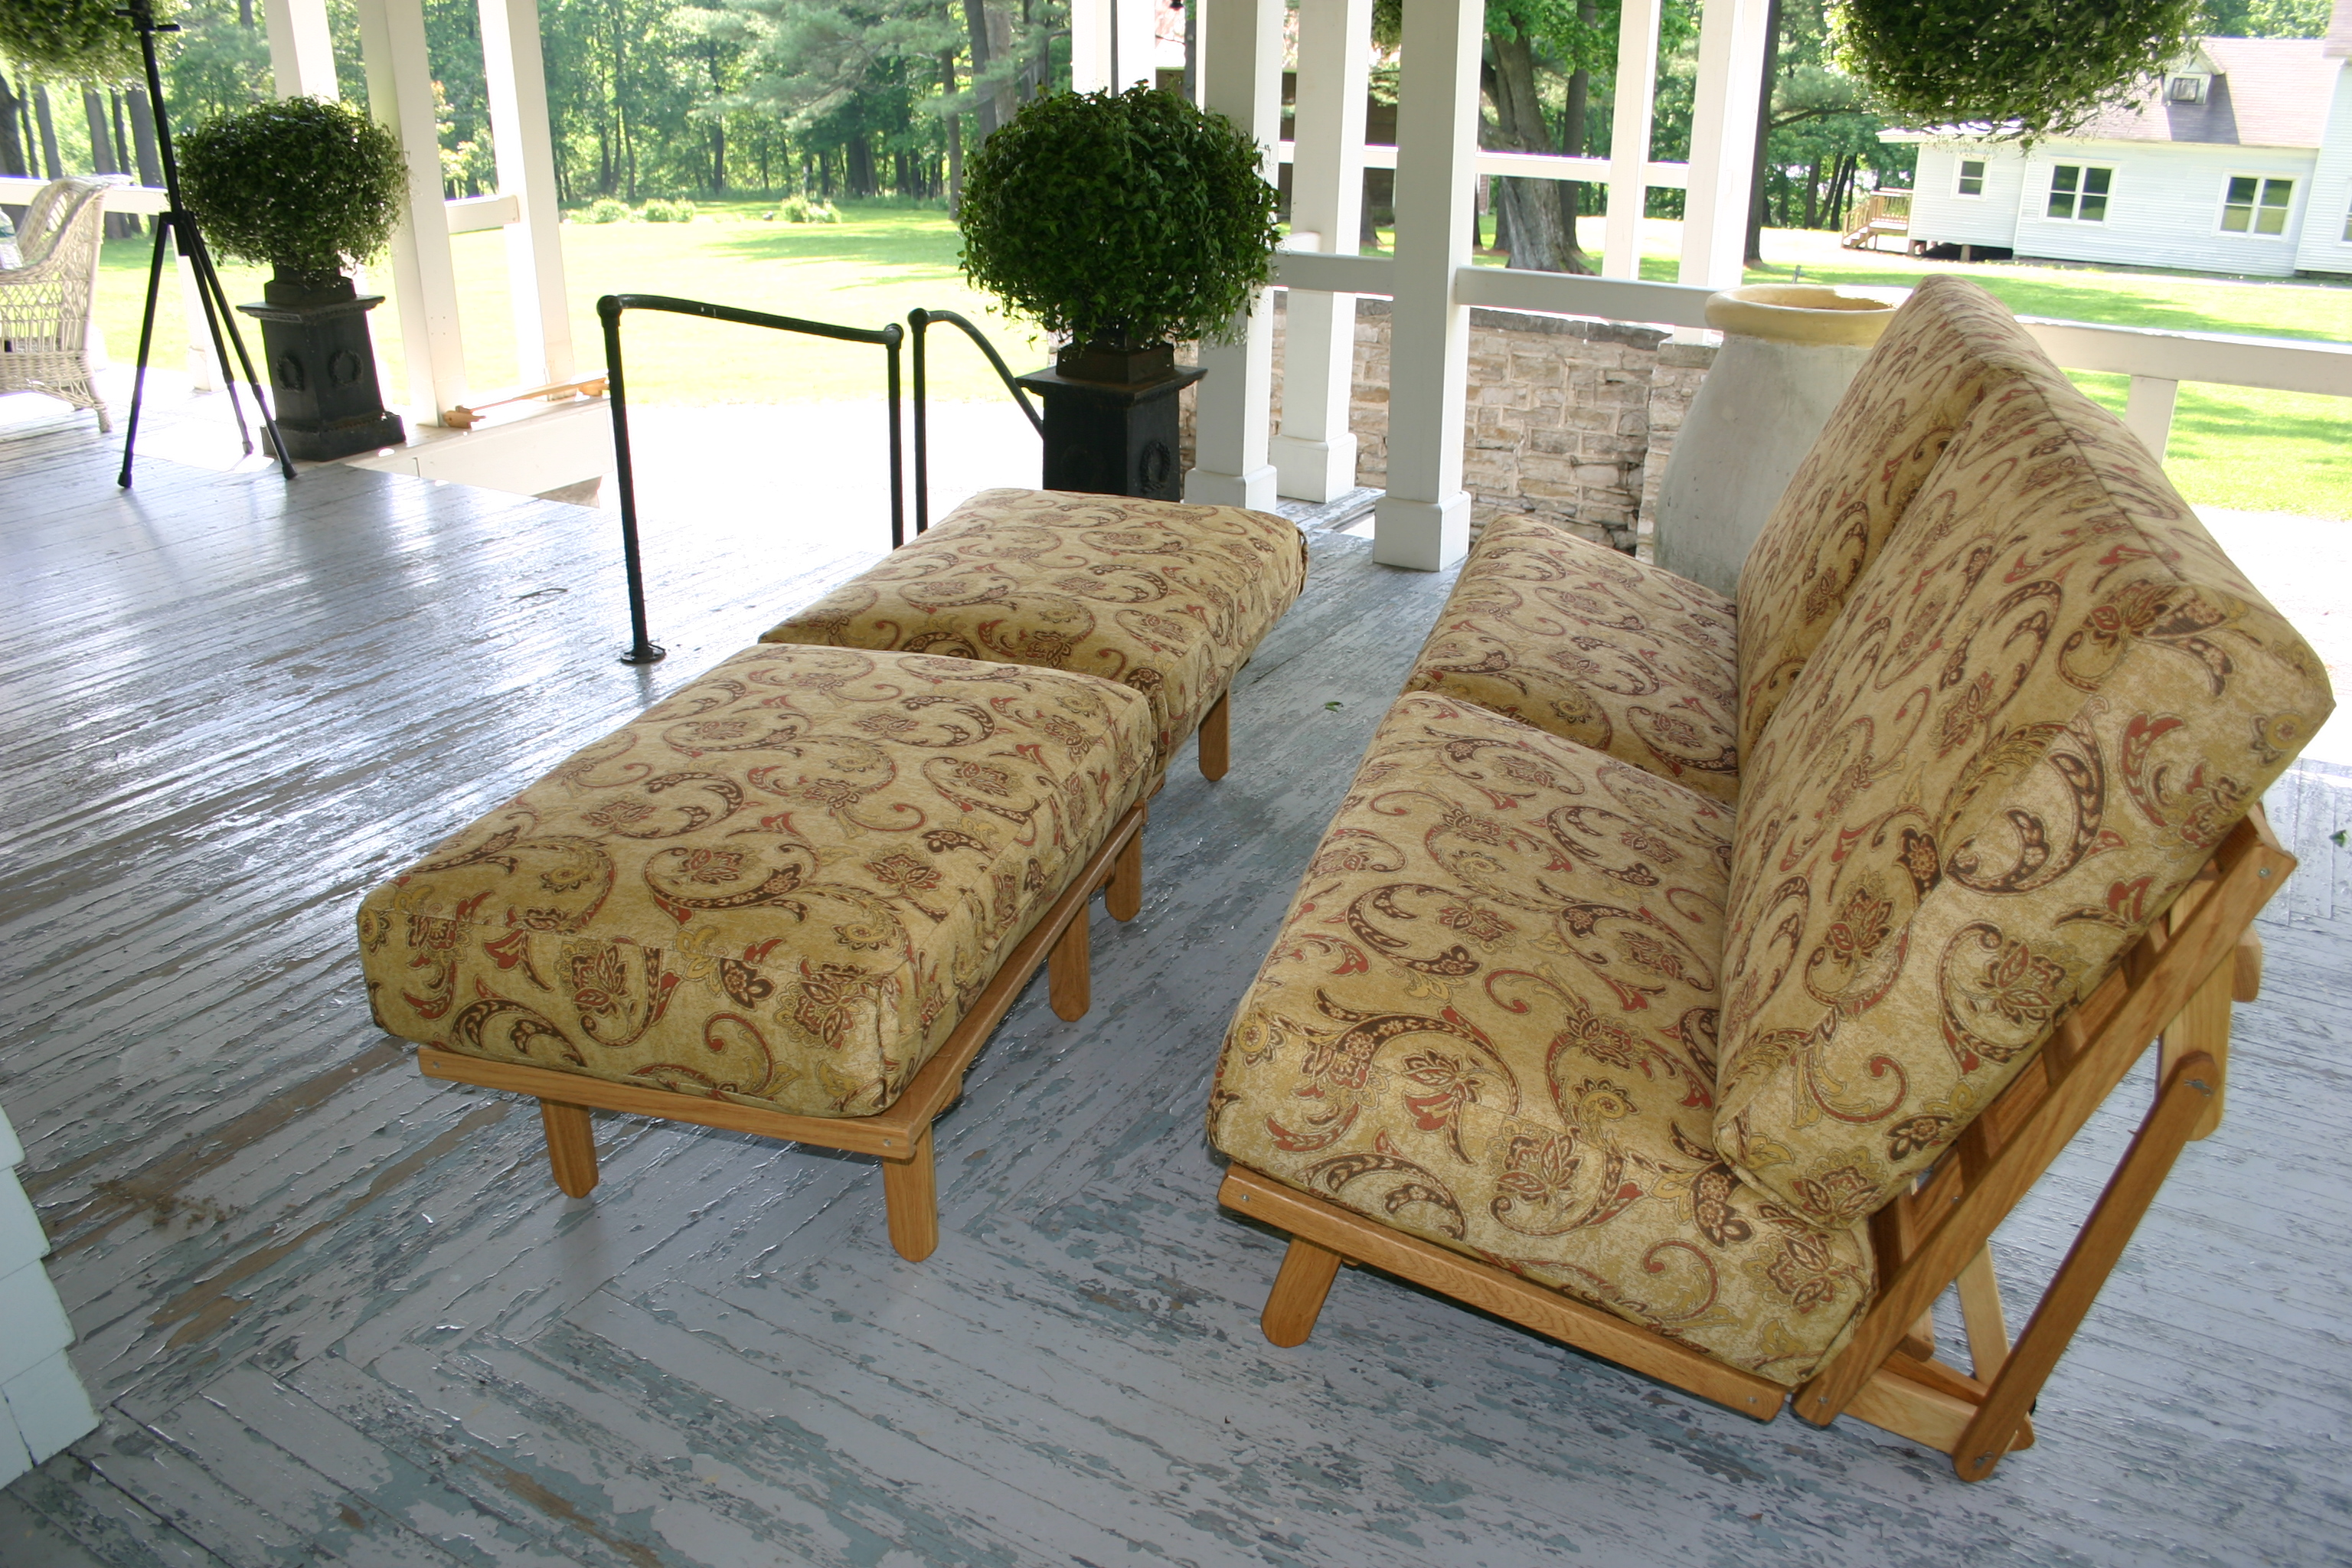 Freedom Twin Chairs and Ottomans